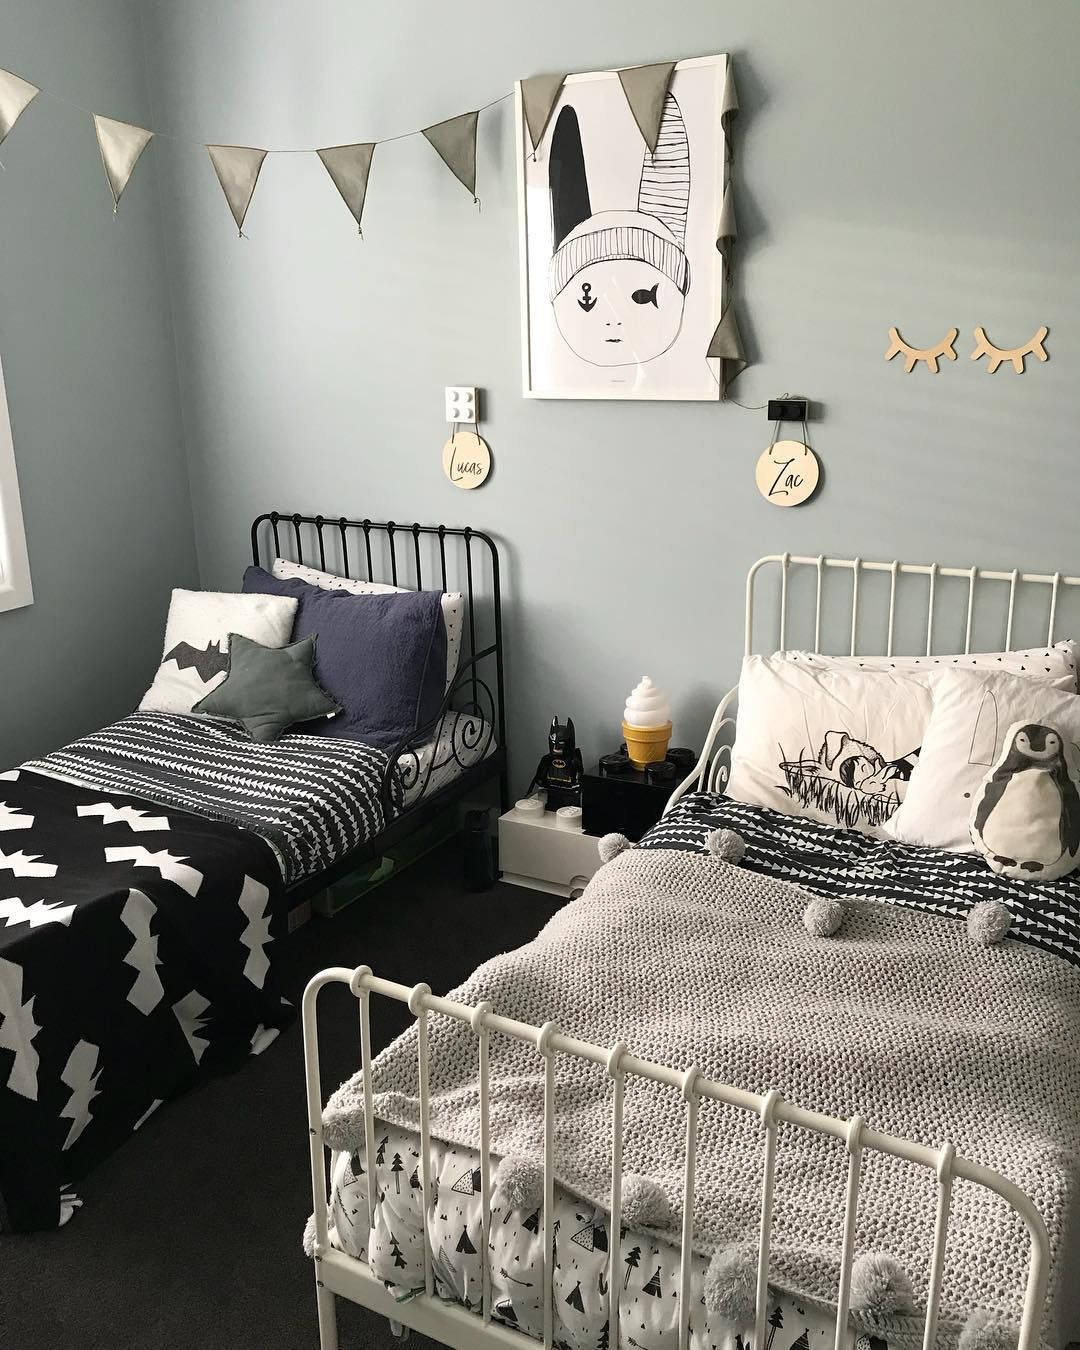 Such A Cute Shared Bedroom For Two Little Boys With A Black White